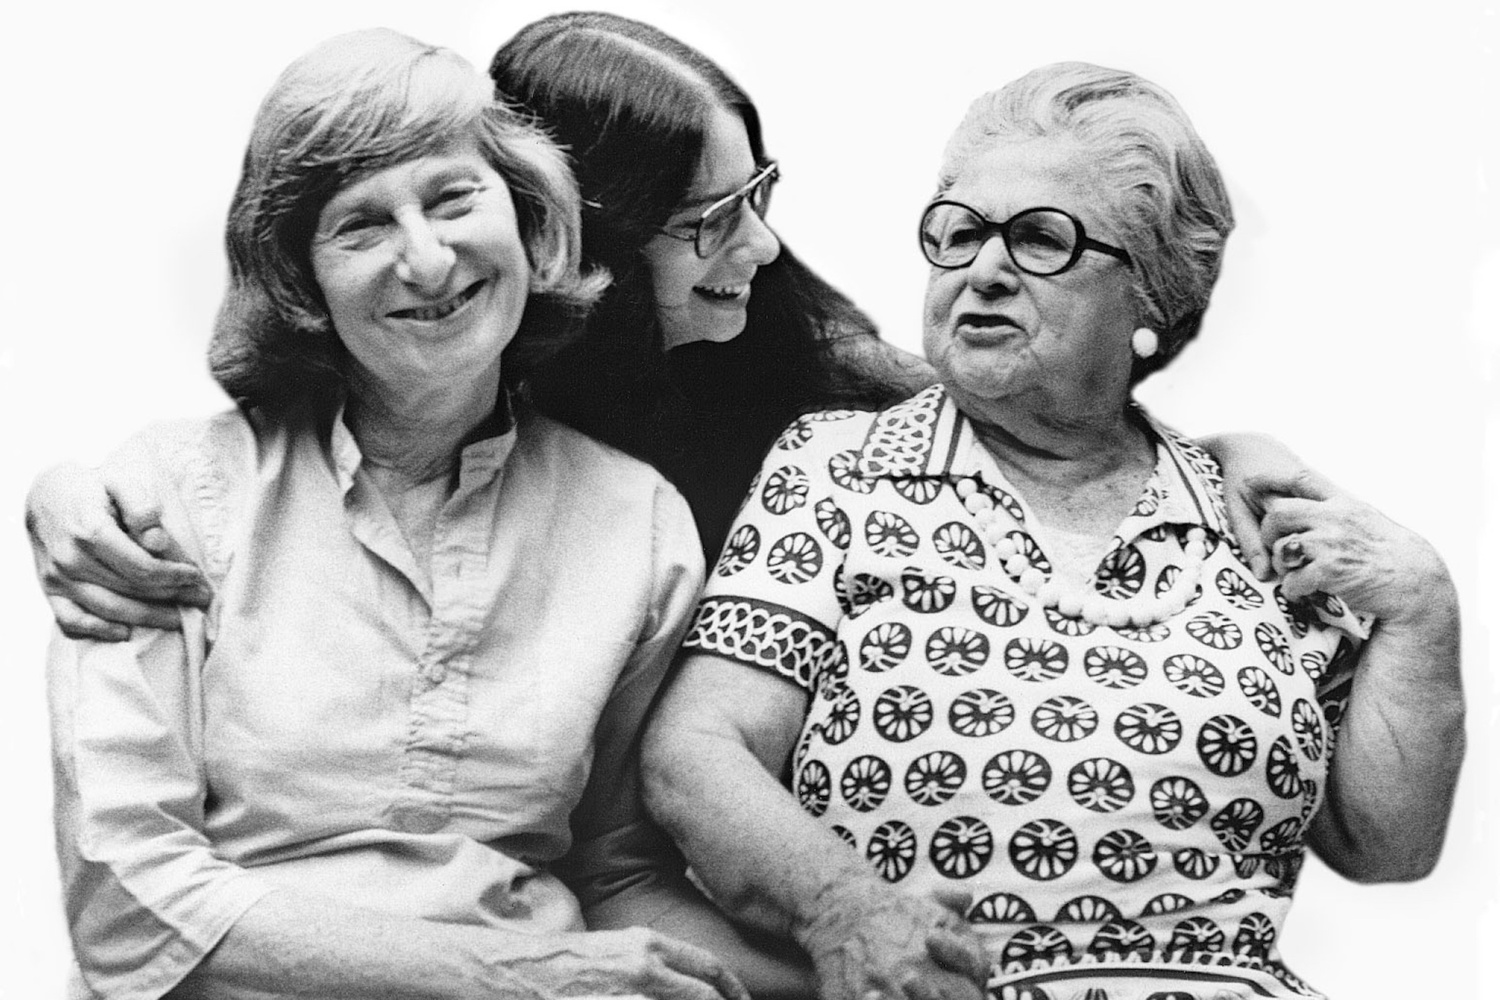 Nana, Mom, and Me. 1974. USA. Directed by Amalie R. Rothschild. Courtesy of the artist